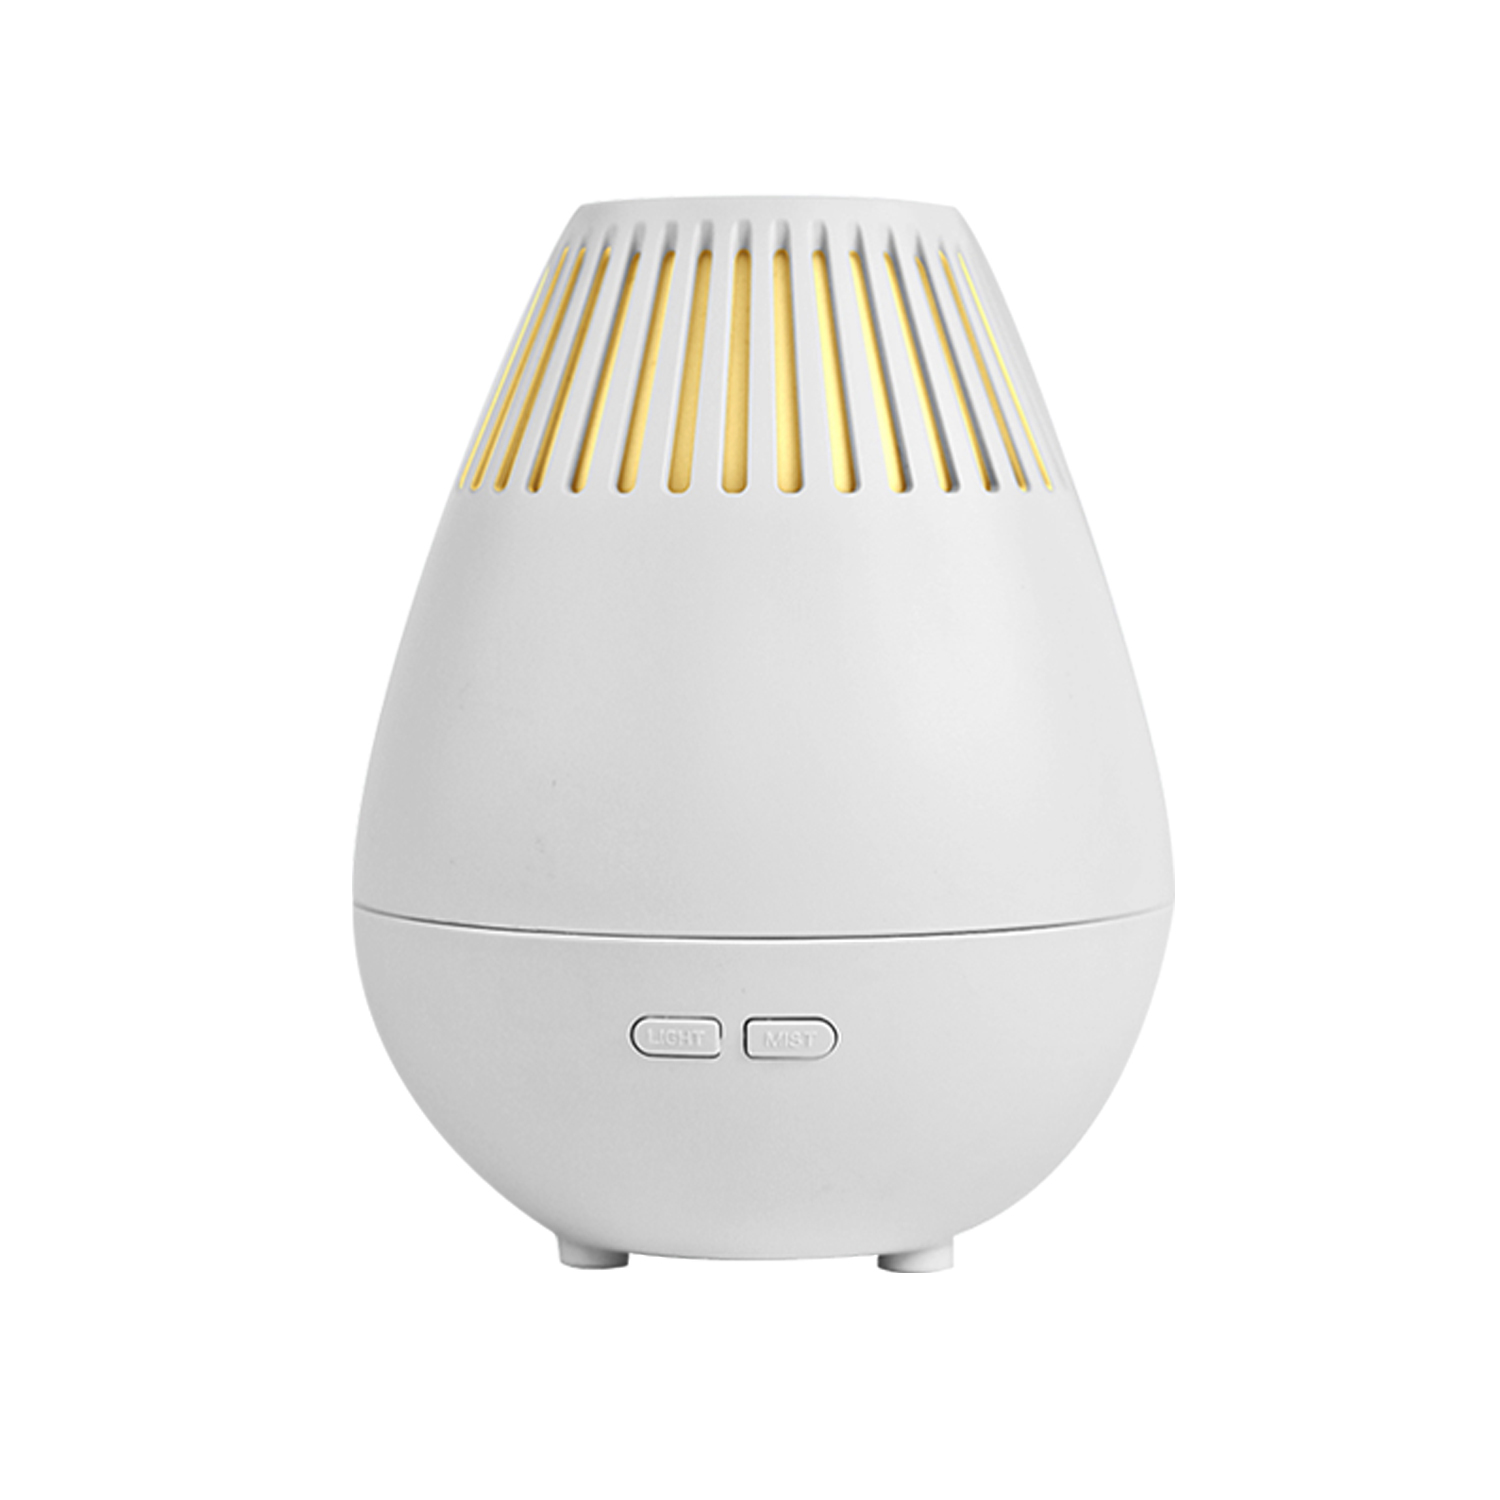 USB Mini Humidifier Aroma Diffuser with 7 Colorful Light